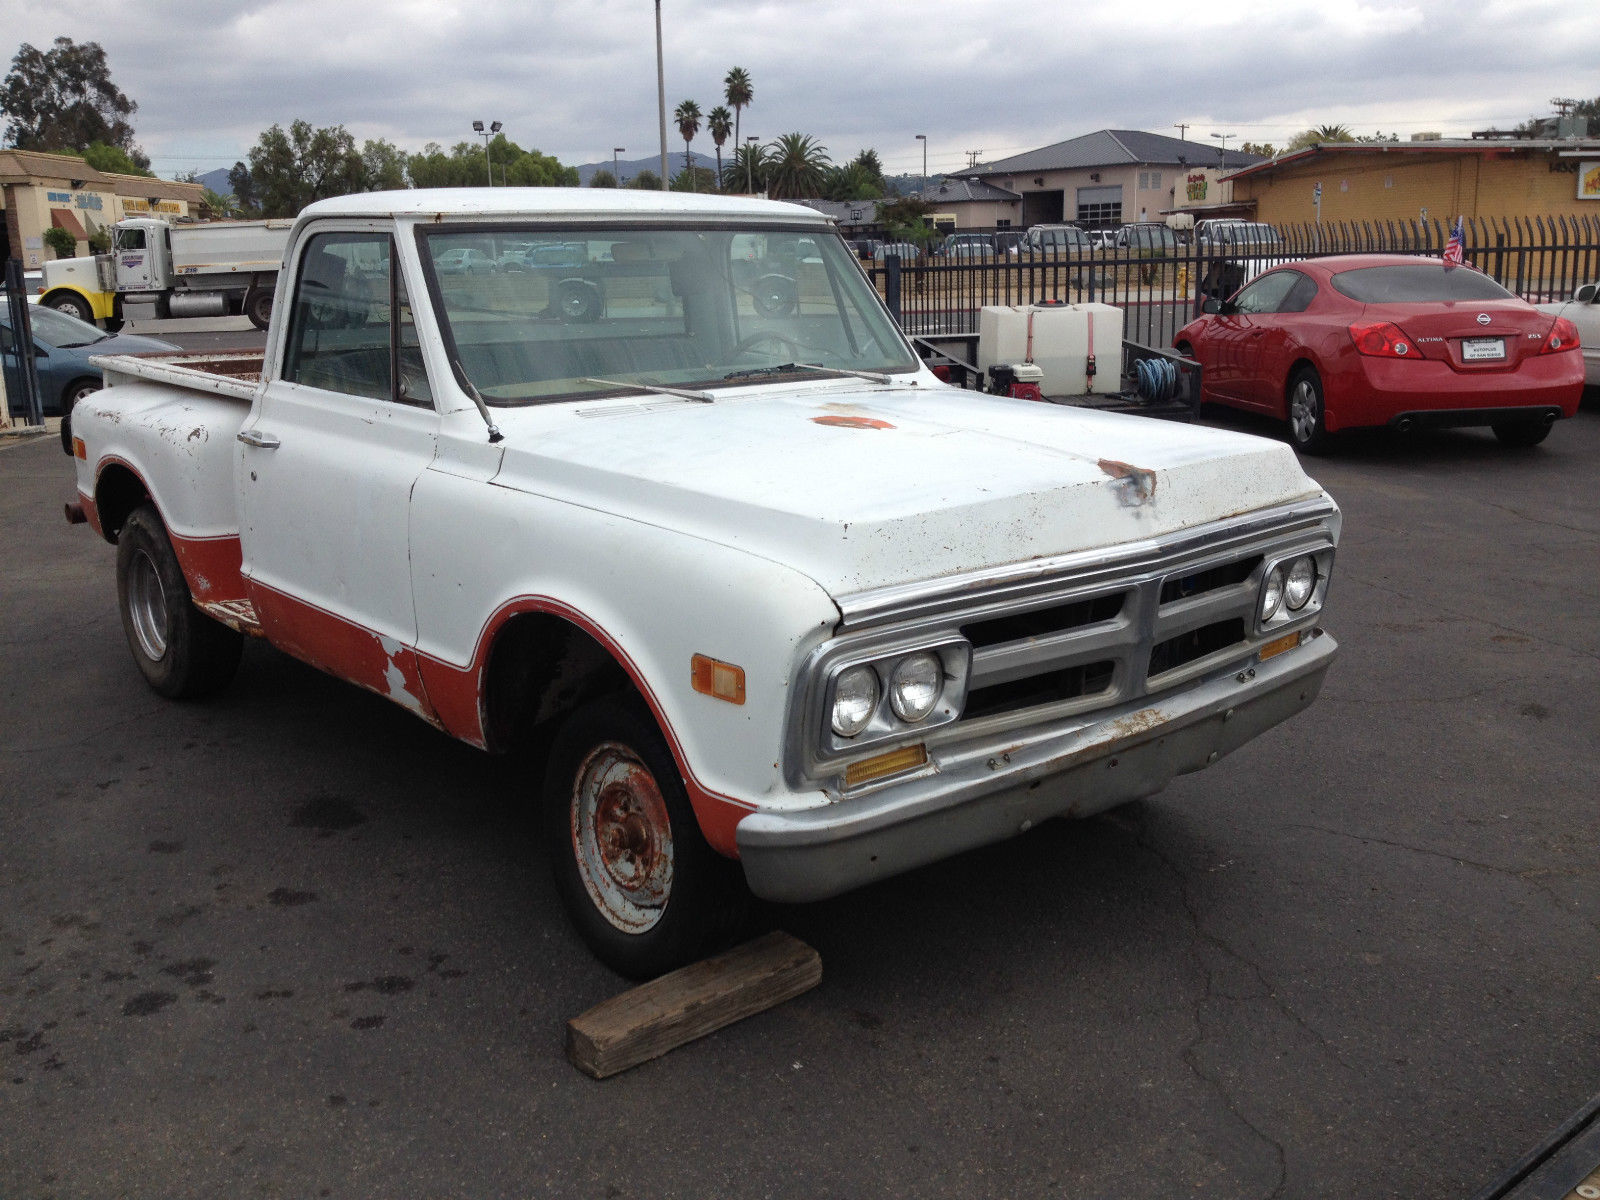 1969 gmc chevrolet short bed pickup truck c10 step side for Classic beds for sale